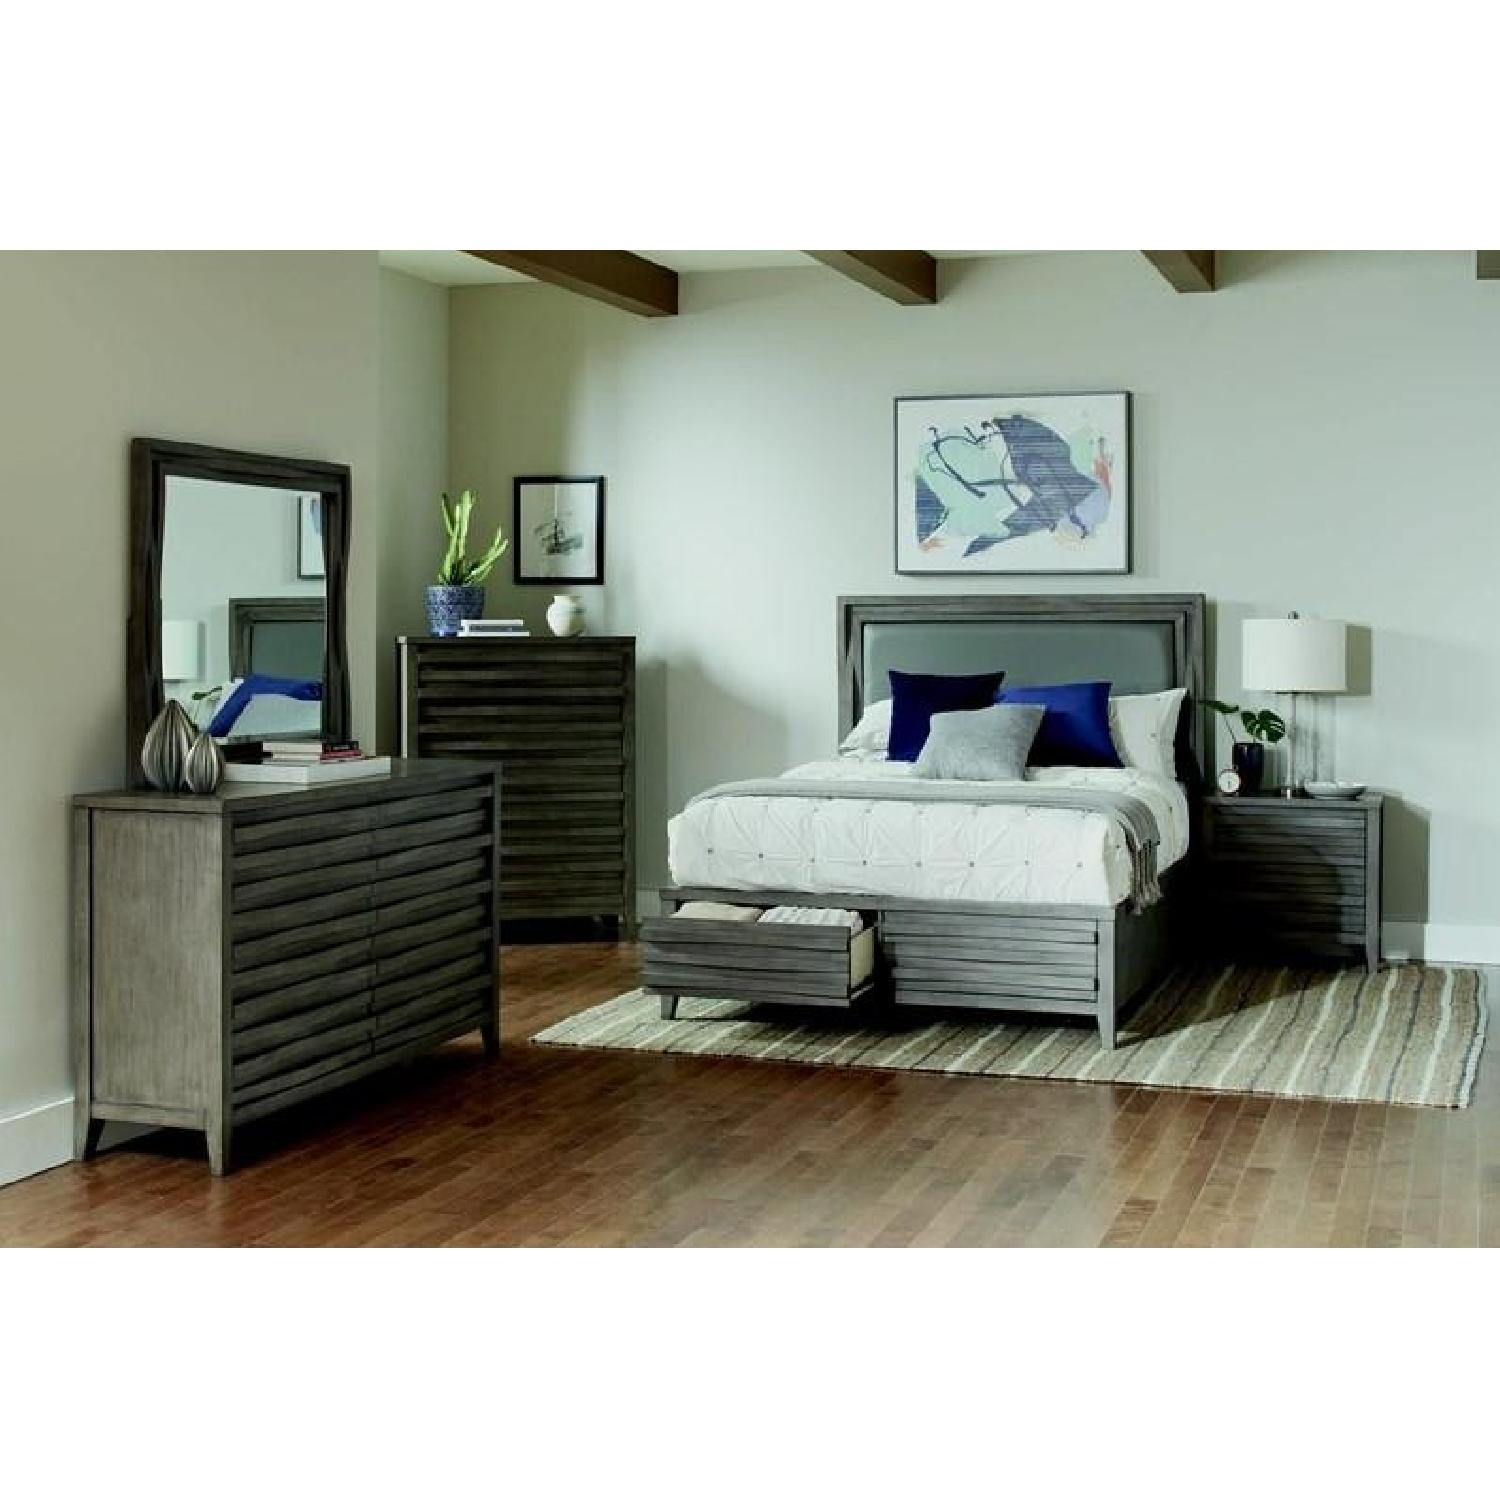 Queen Bed in Dark Taupe w/ 2 Storage Drawers - image-4